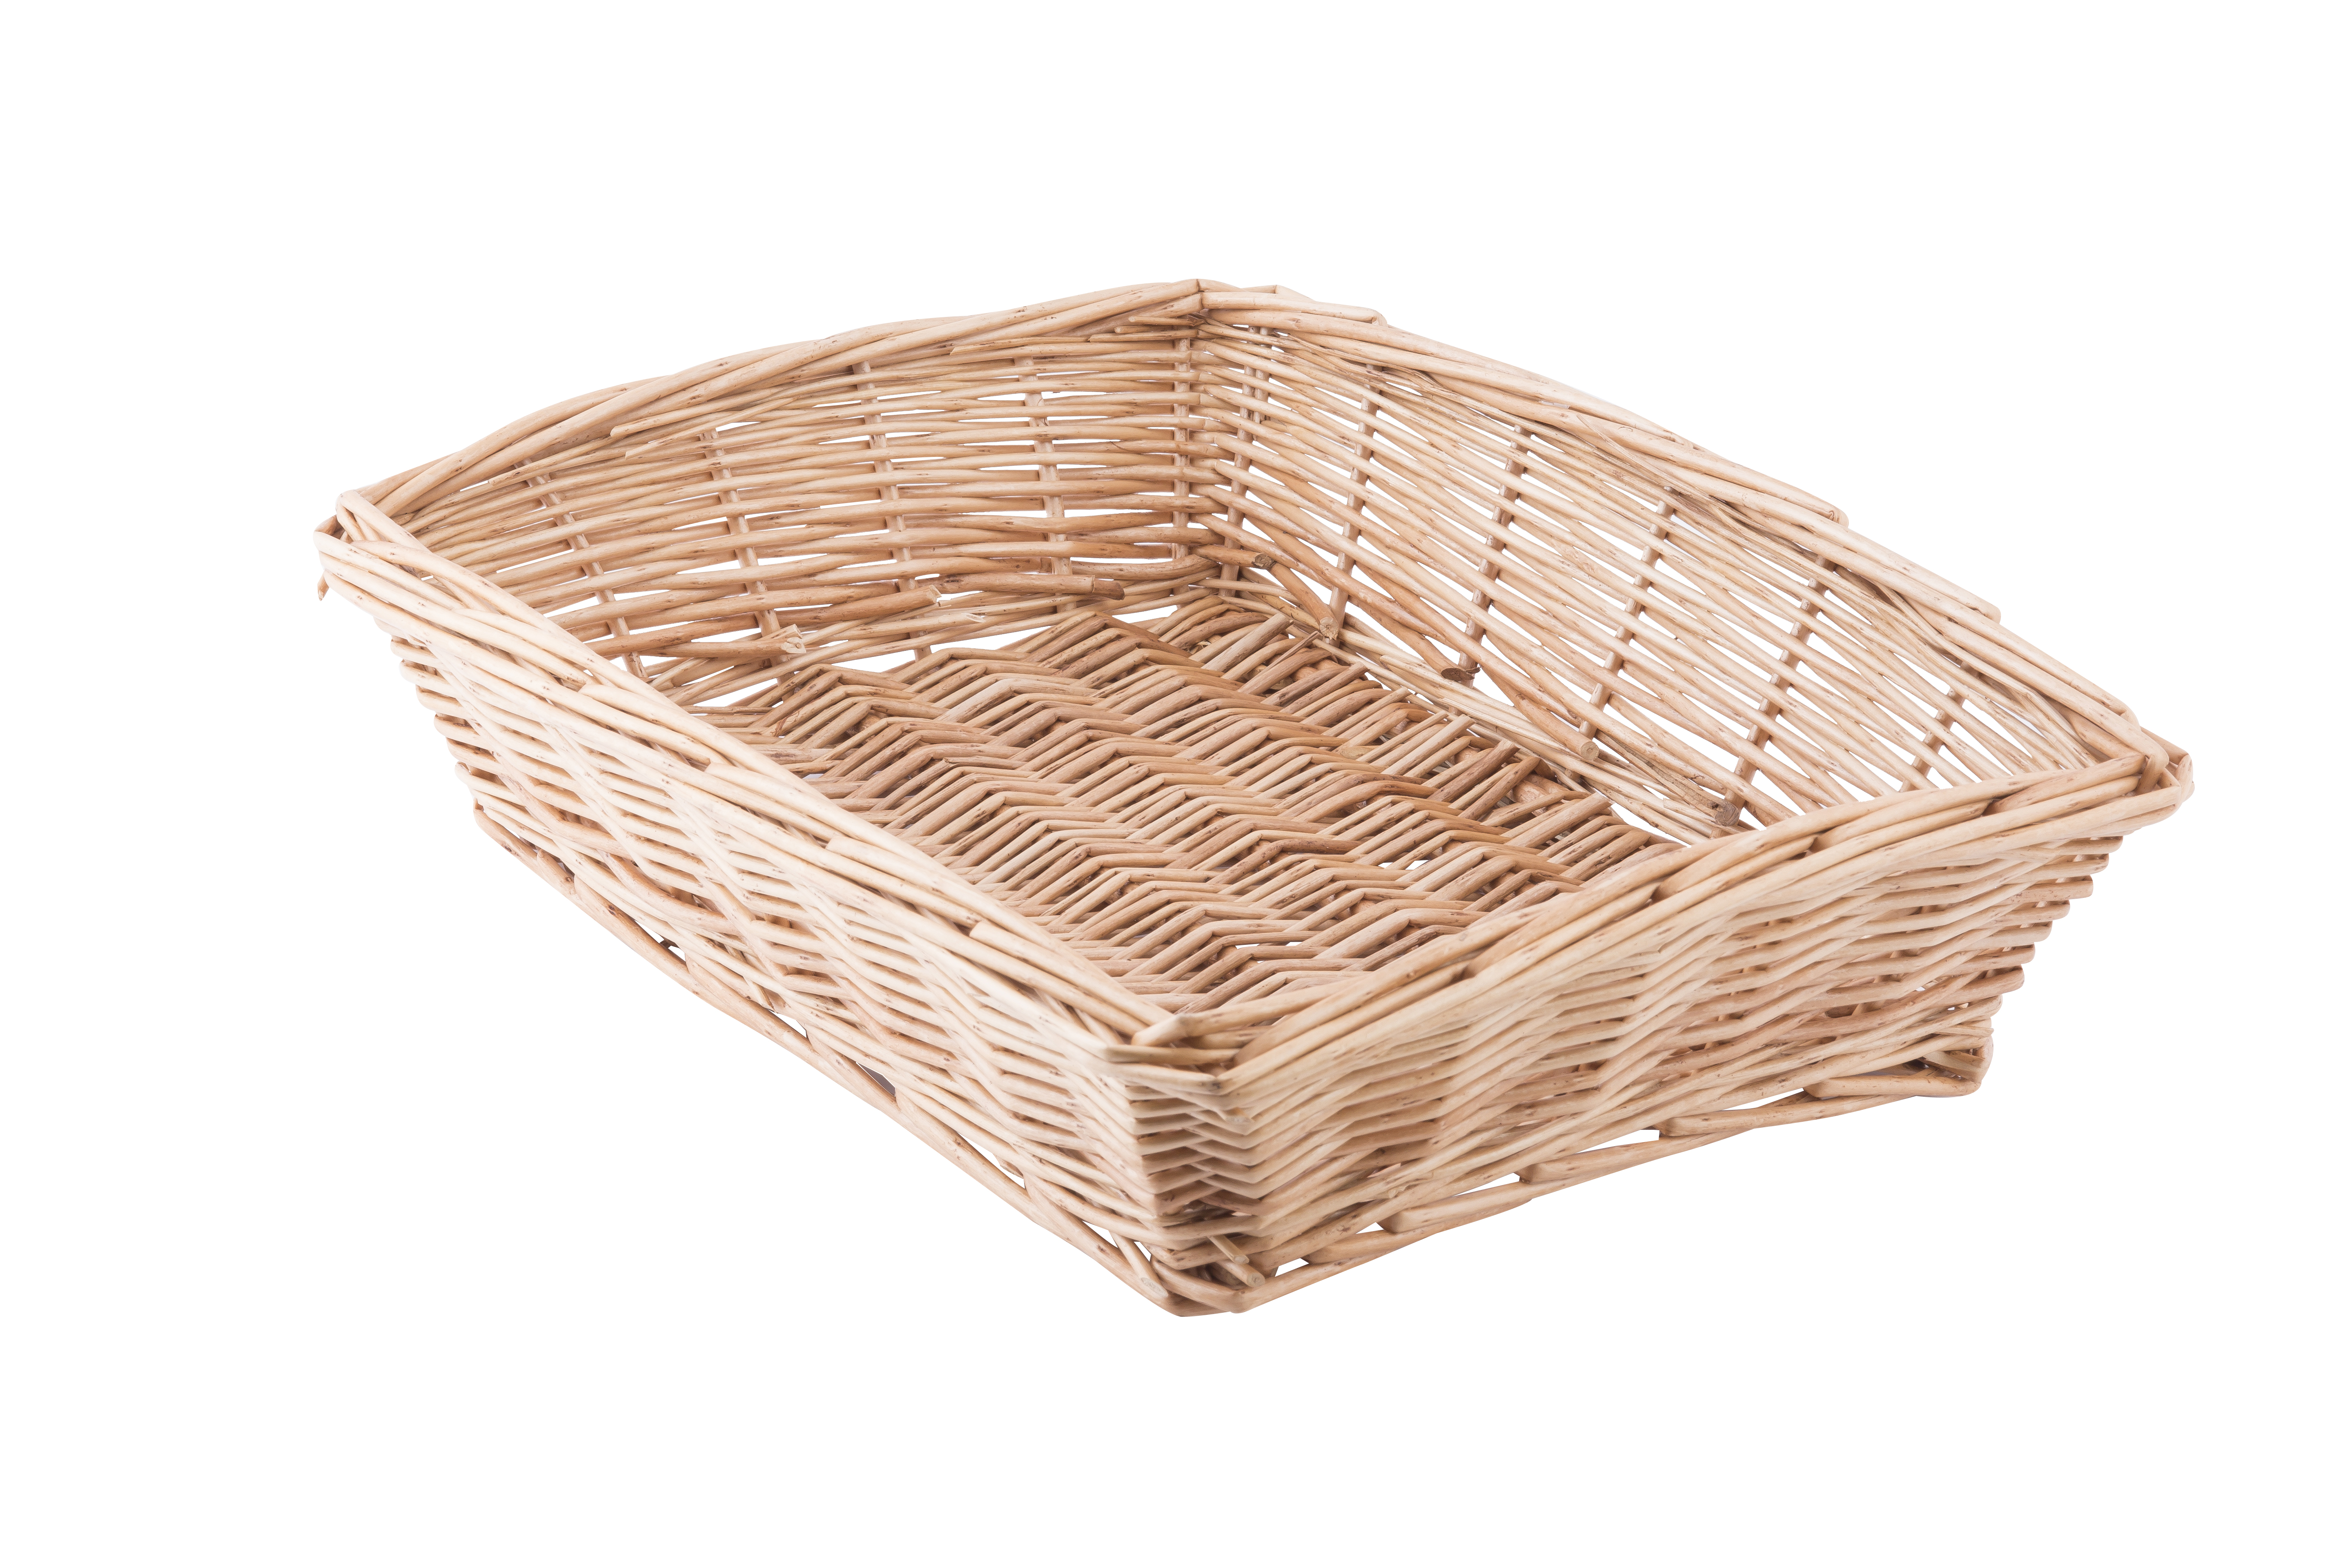 TableCraft Products 1689 hand woven baskets